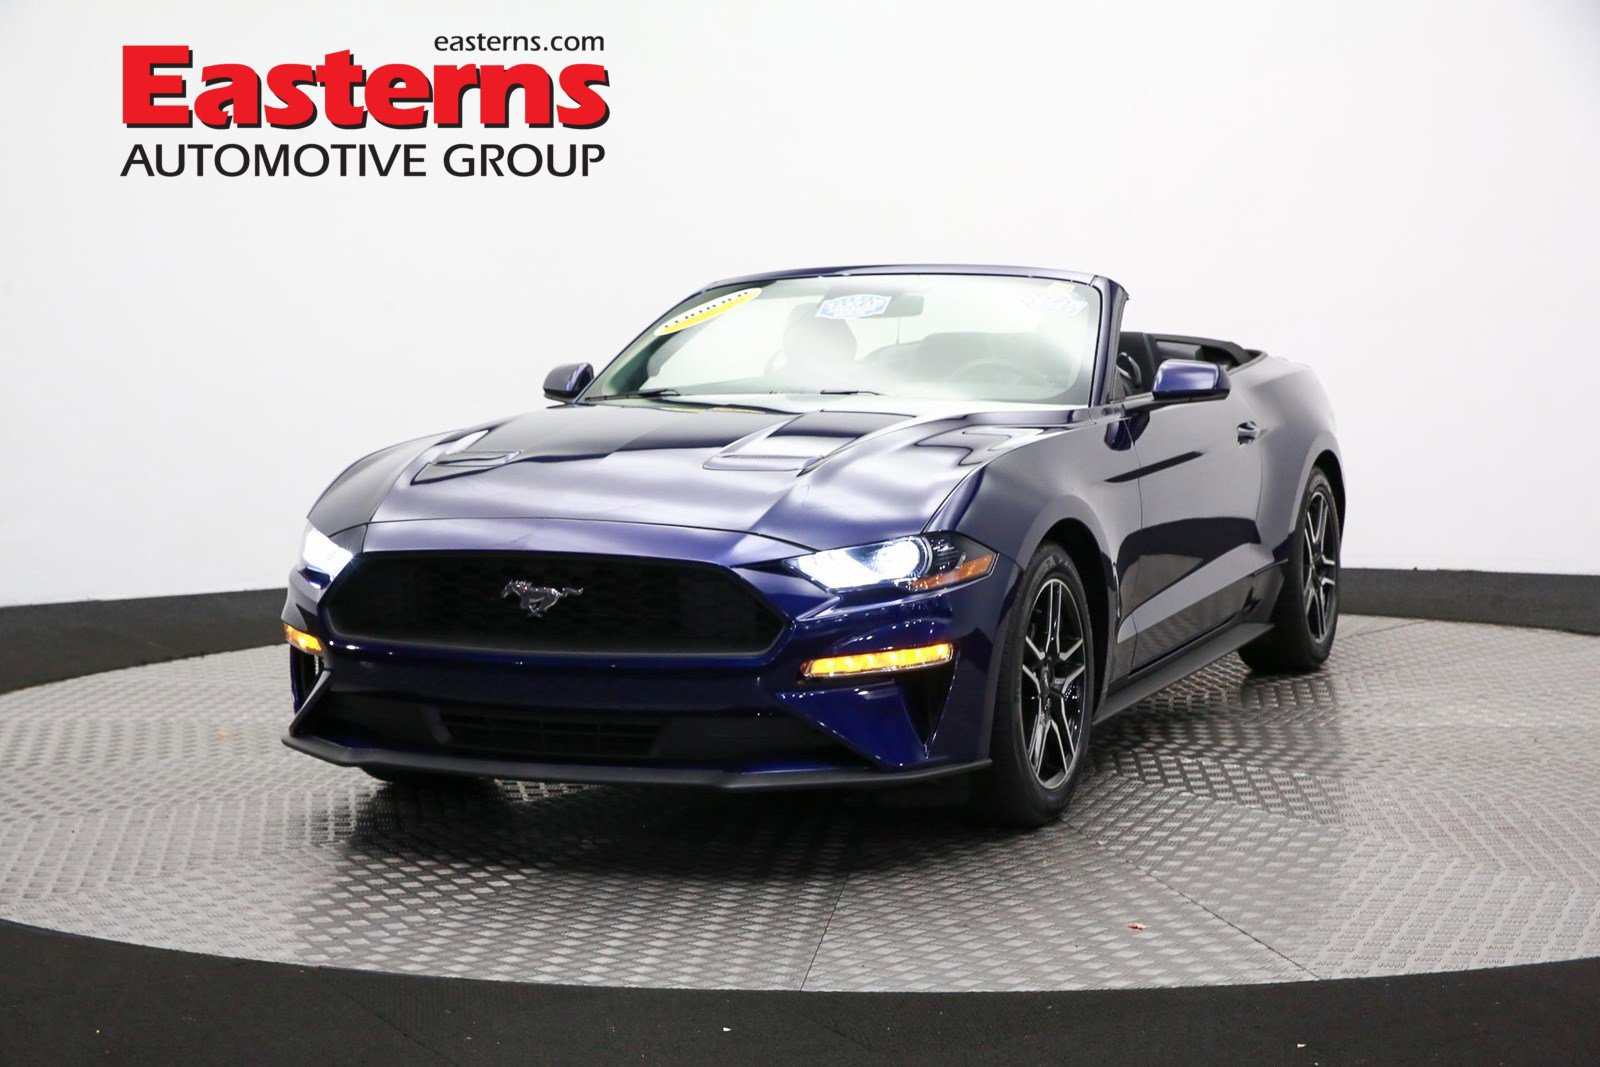 2019 Ford Mustang Convertible image